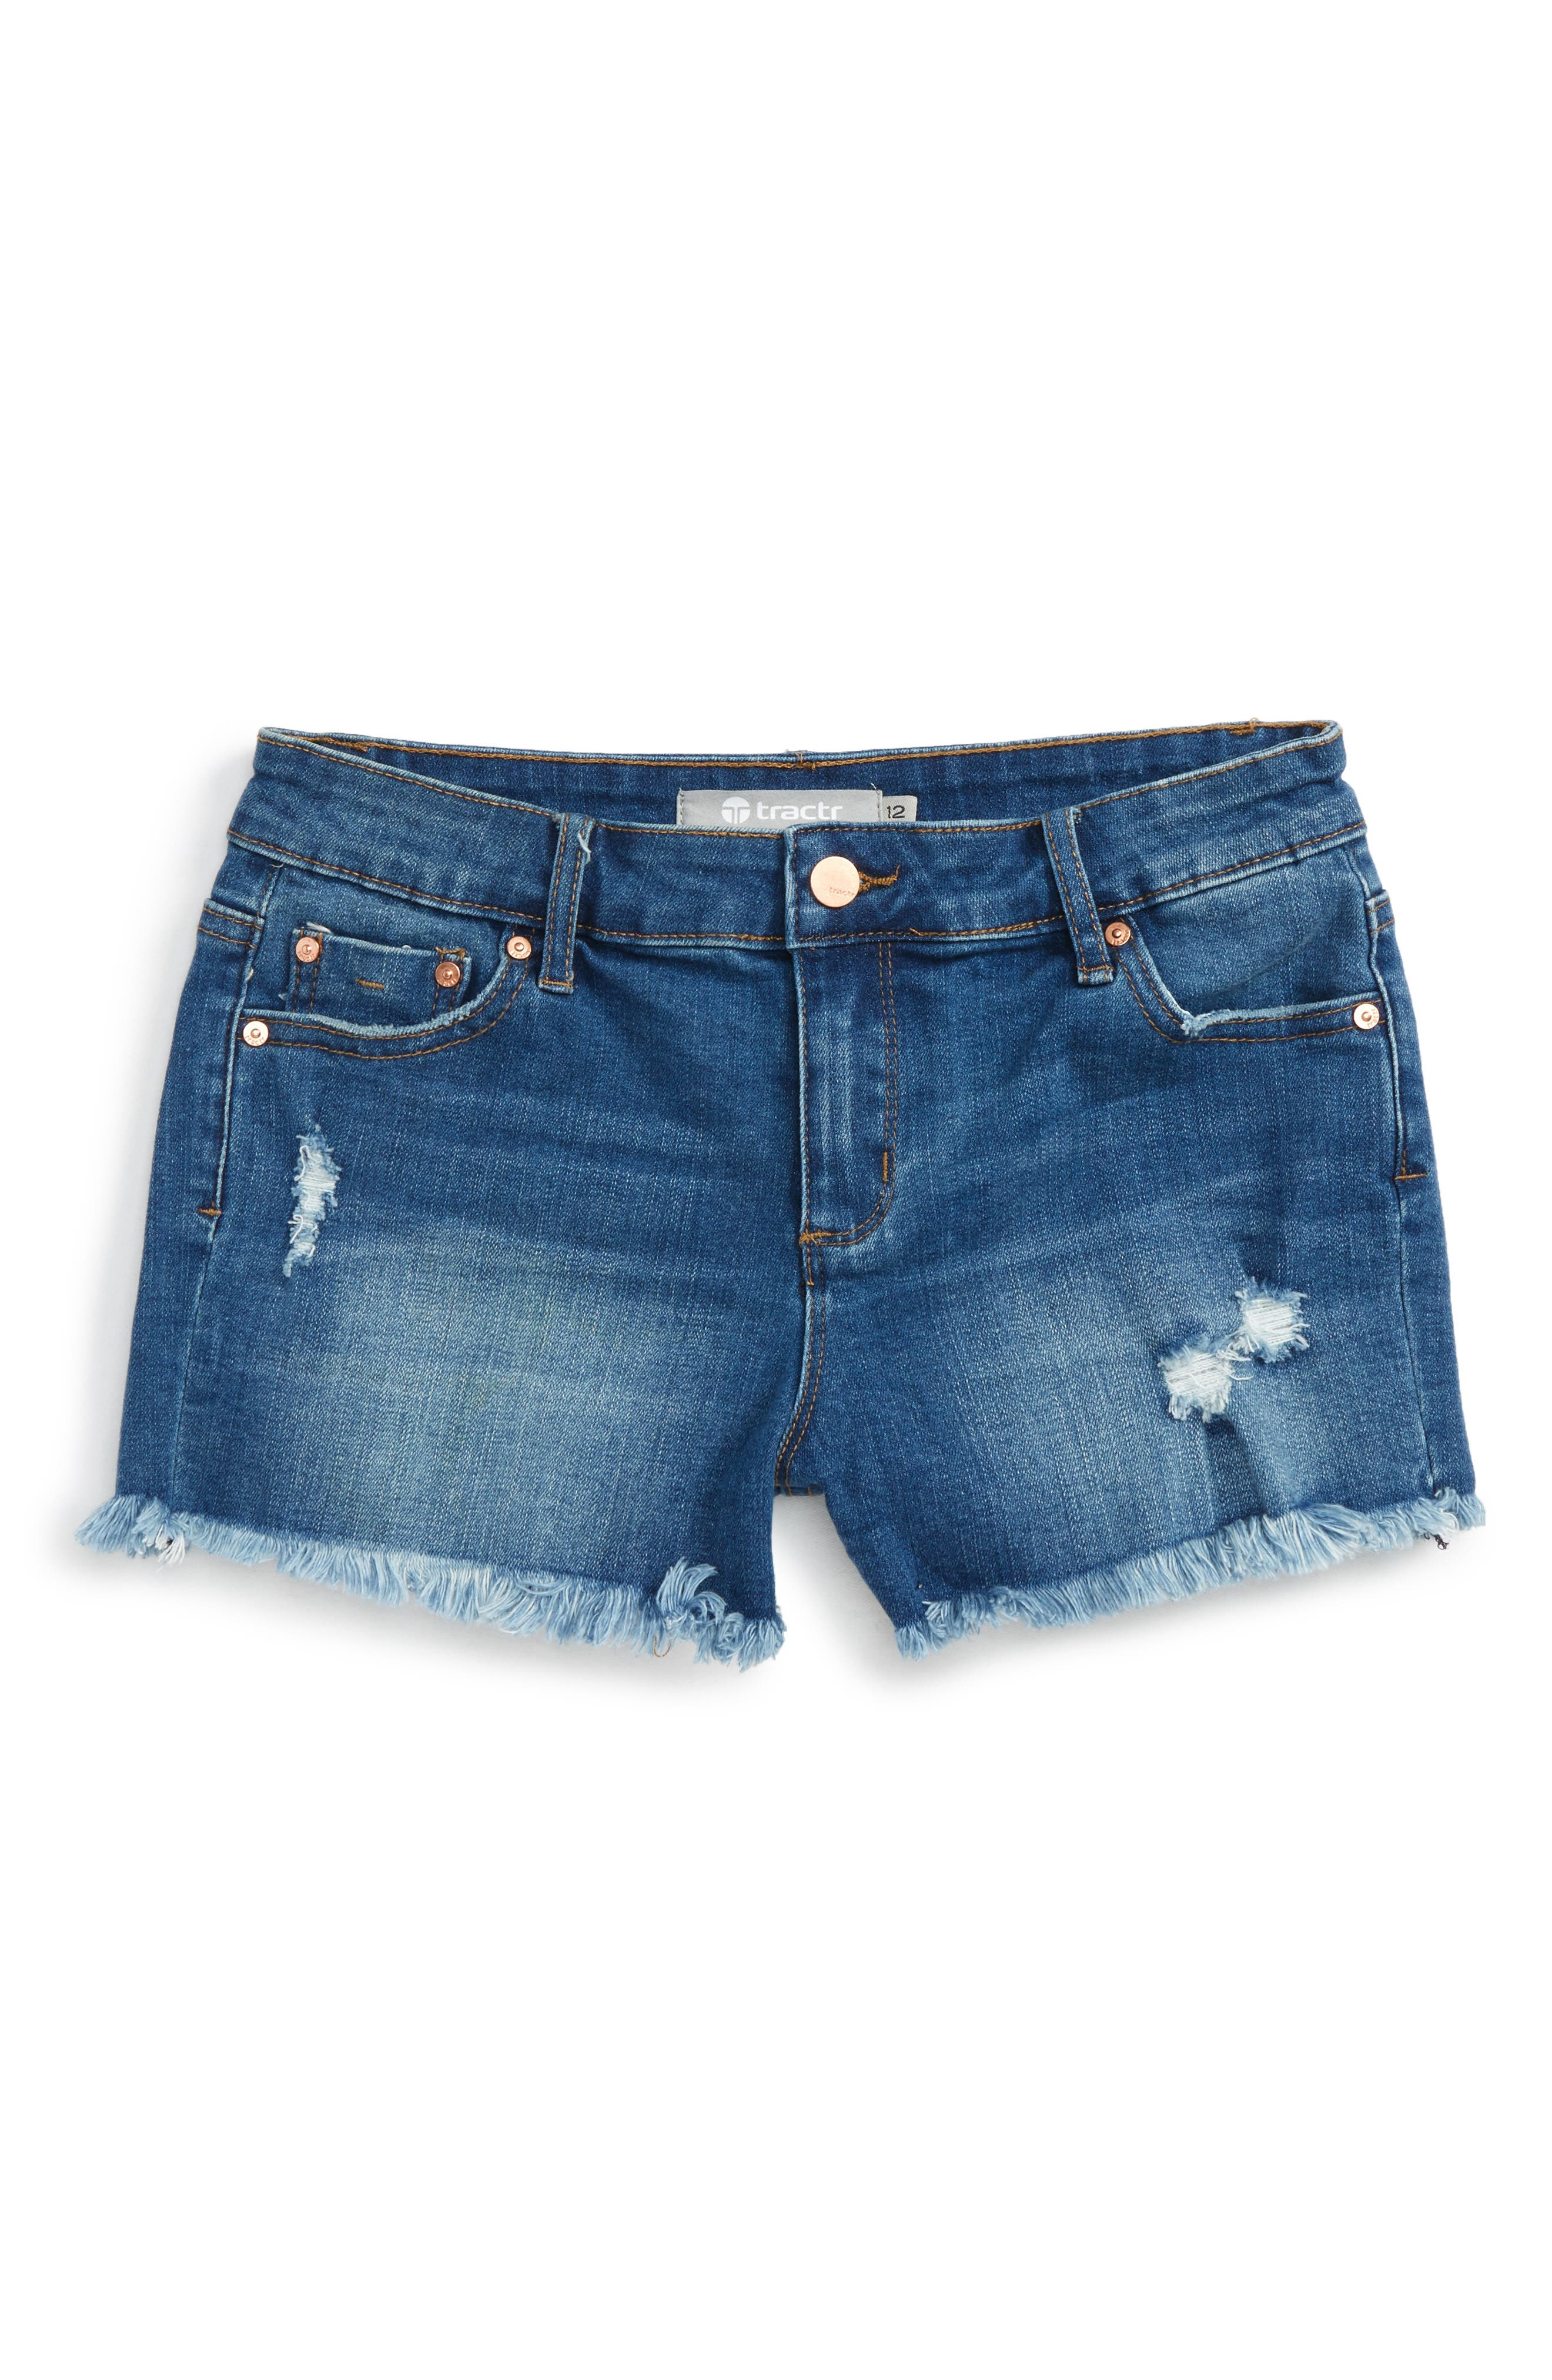 Alternate Image 1 Selected - Tractr Distressed Cutoff Denim Shorts (Big Girls)